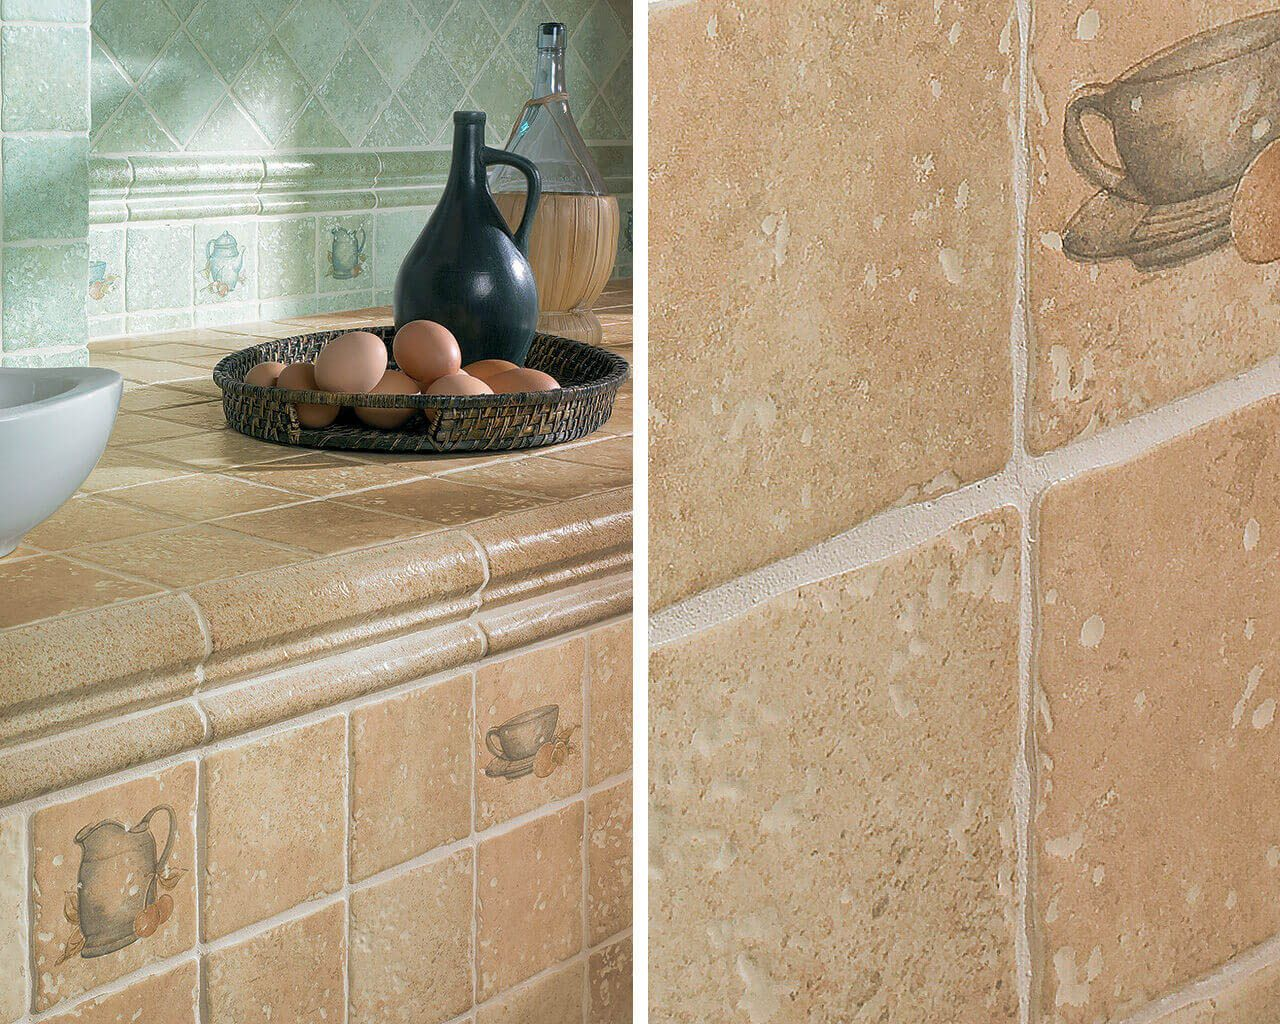 Traditional Tiles With Irregular Edges And A Distinct